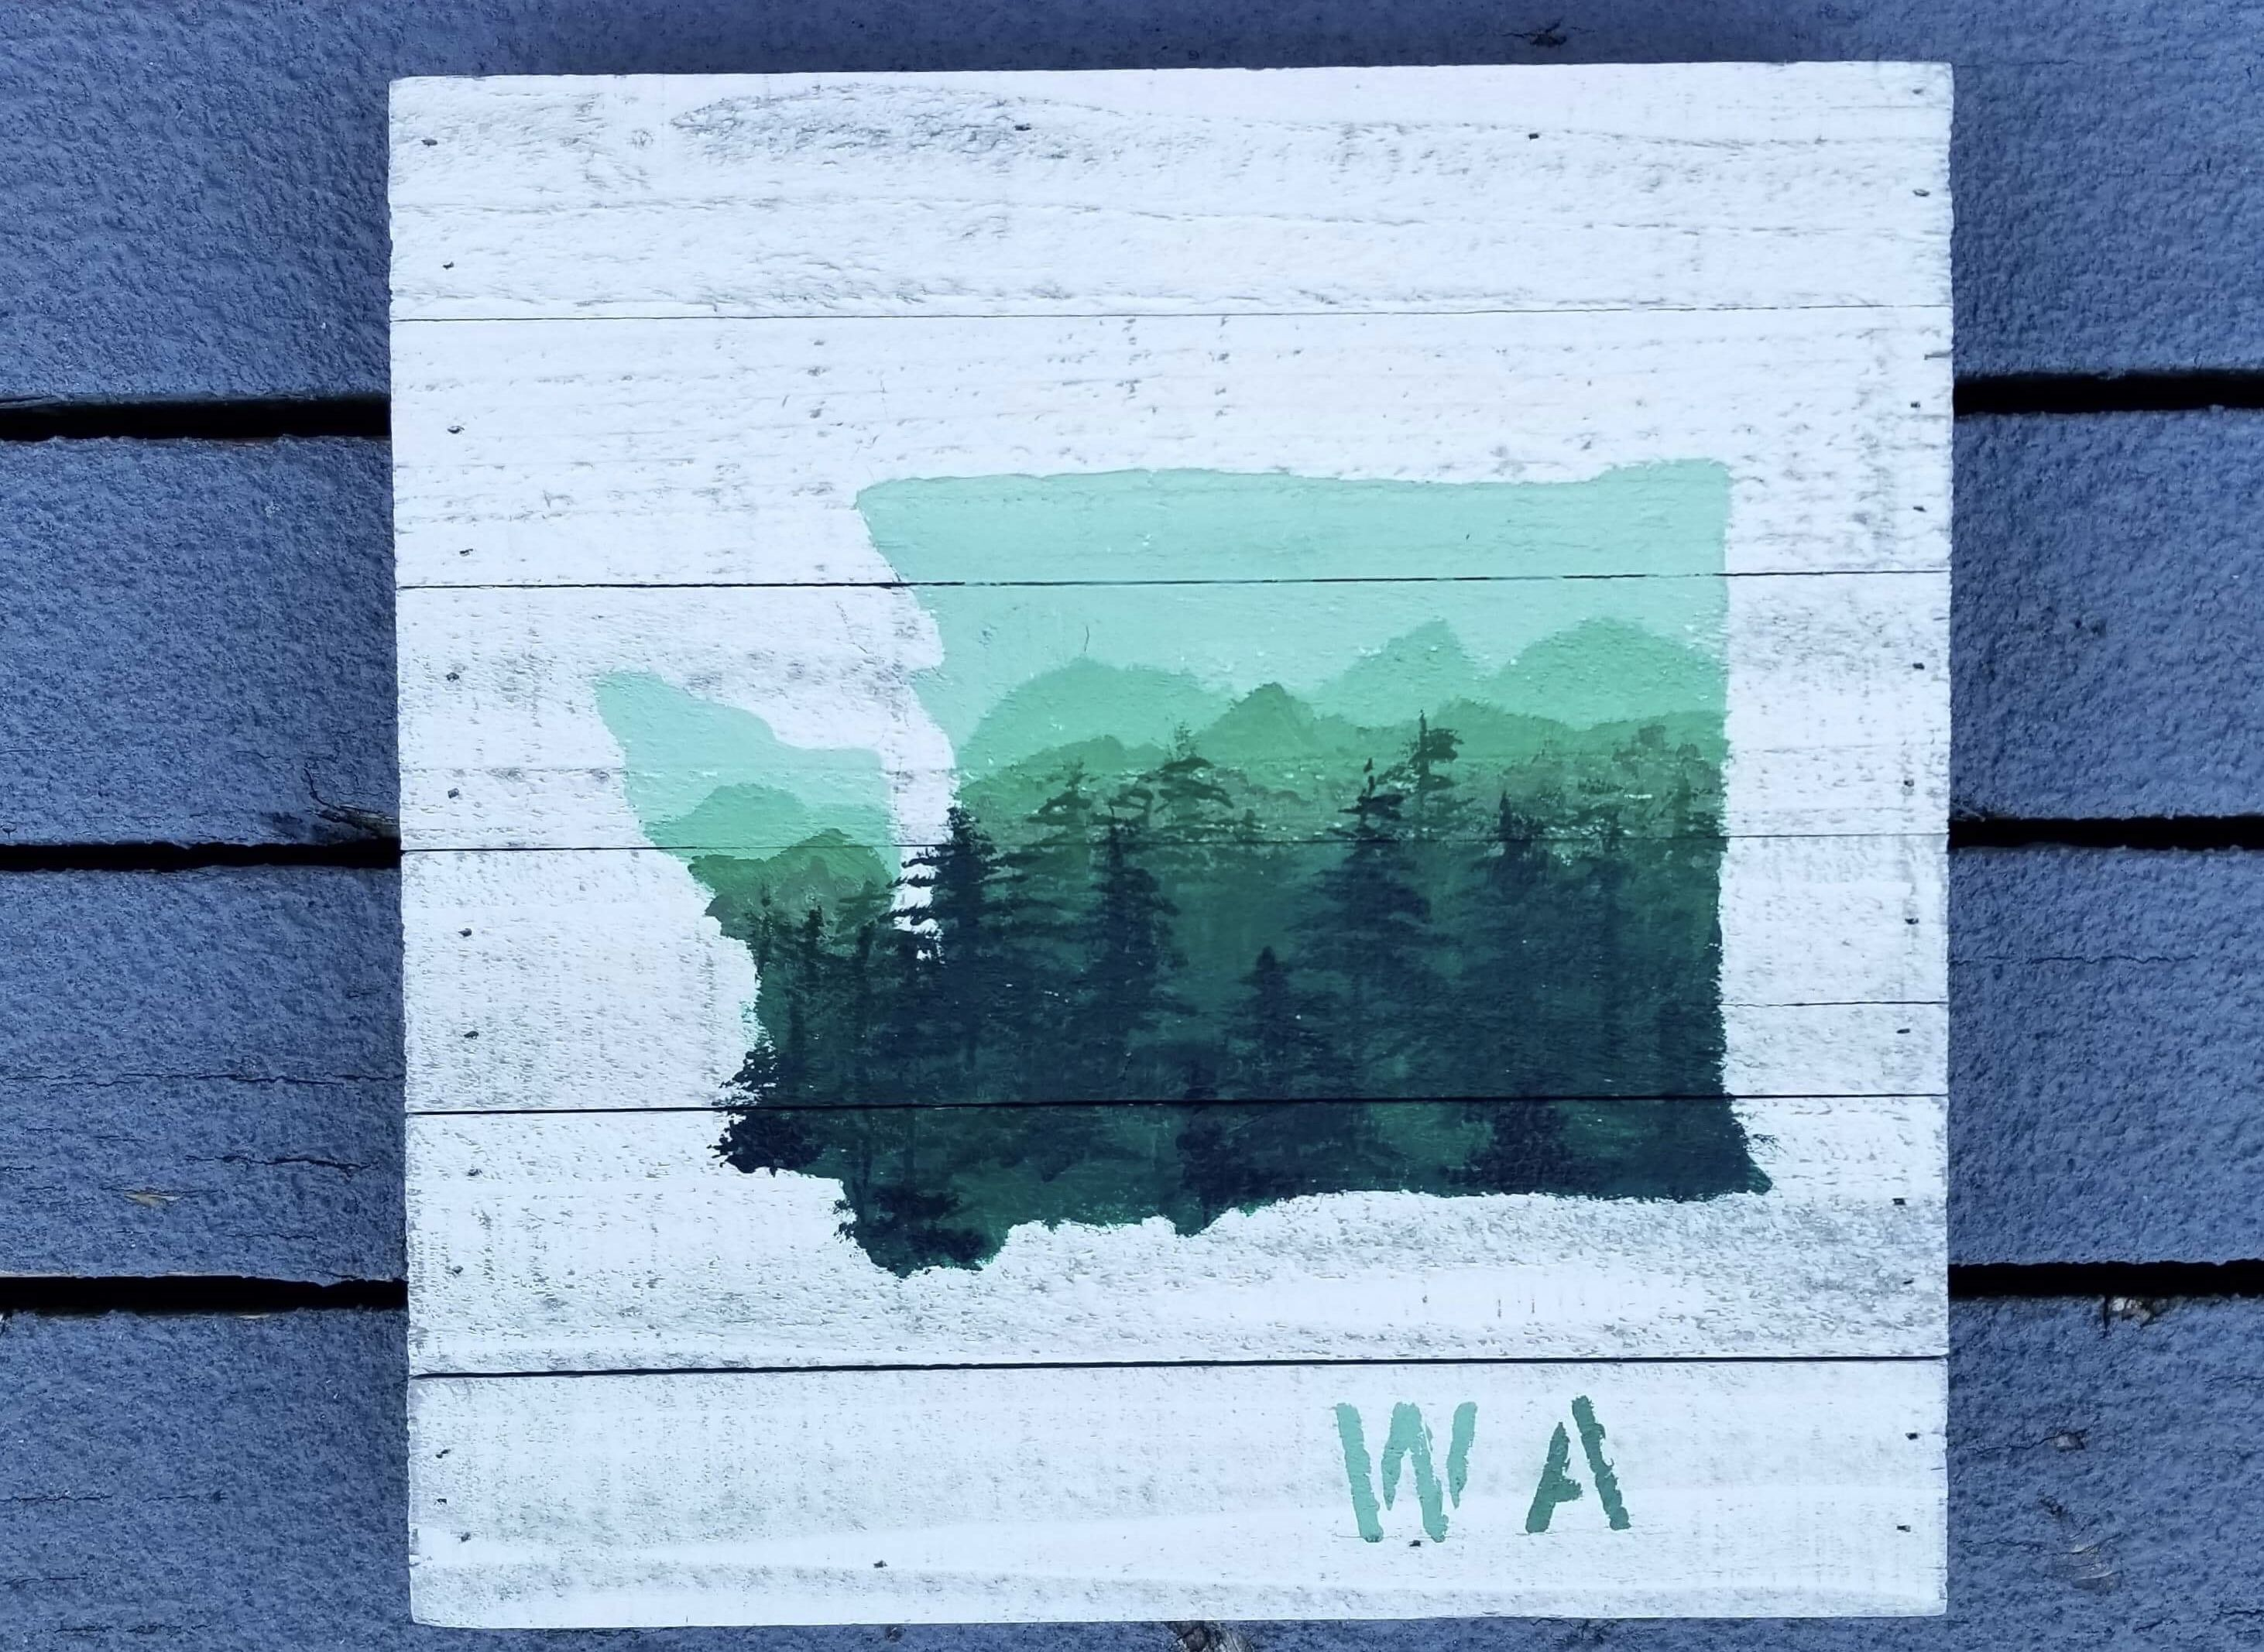 Wa Washington State Painting On White Washed Board Canvas 12x12 State Canvas Canvas Painting Painting